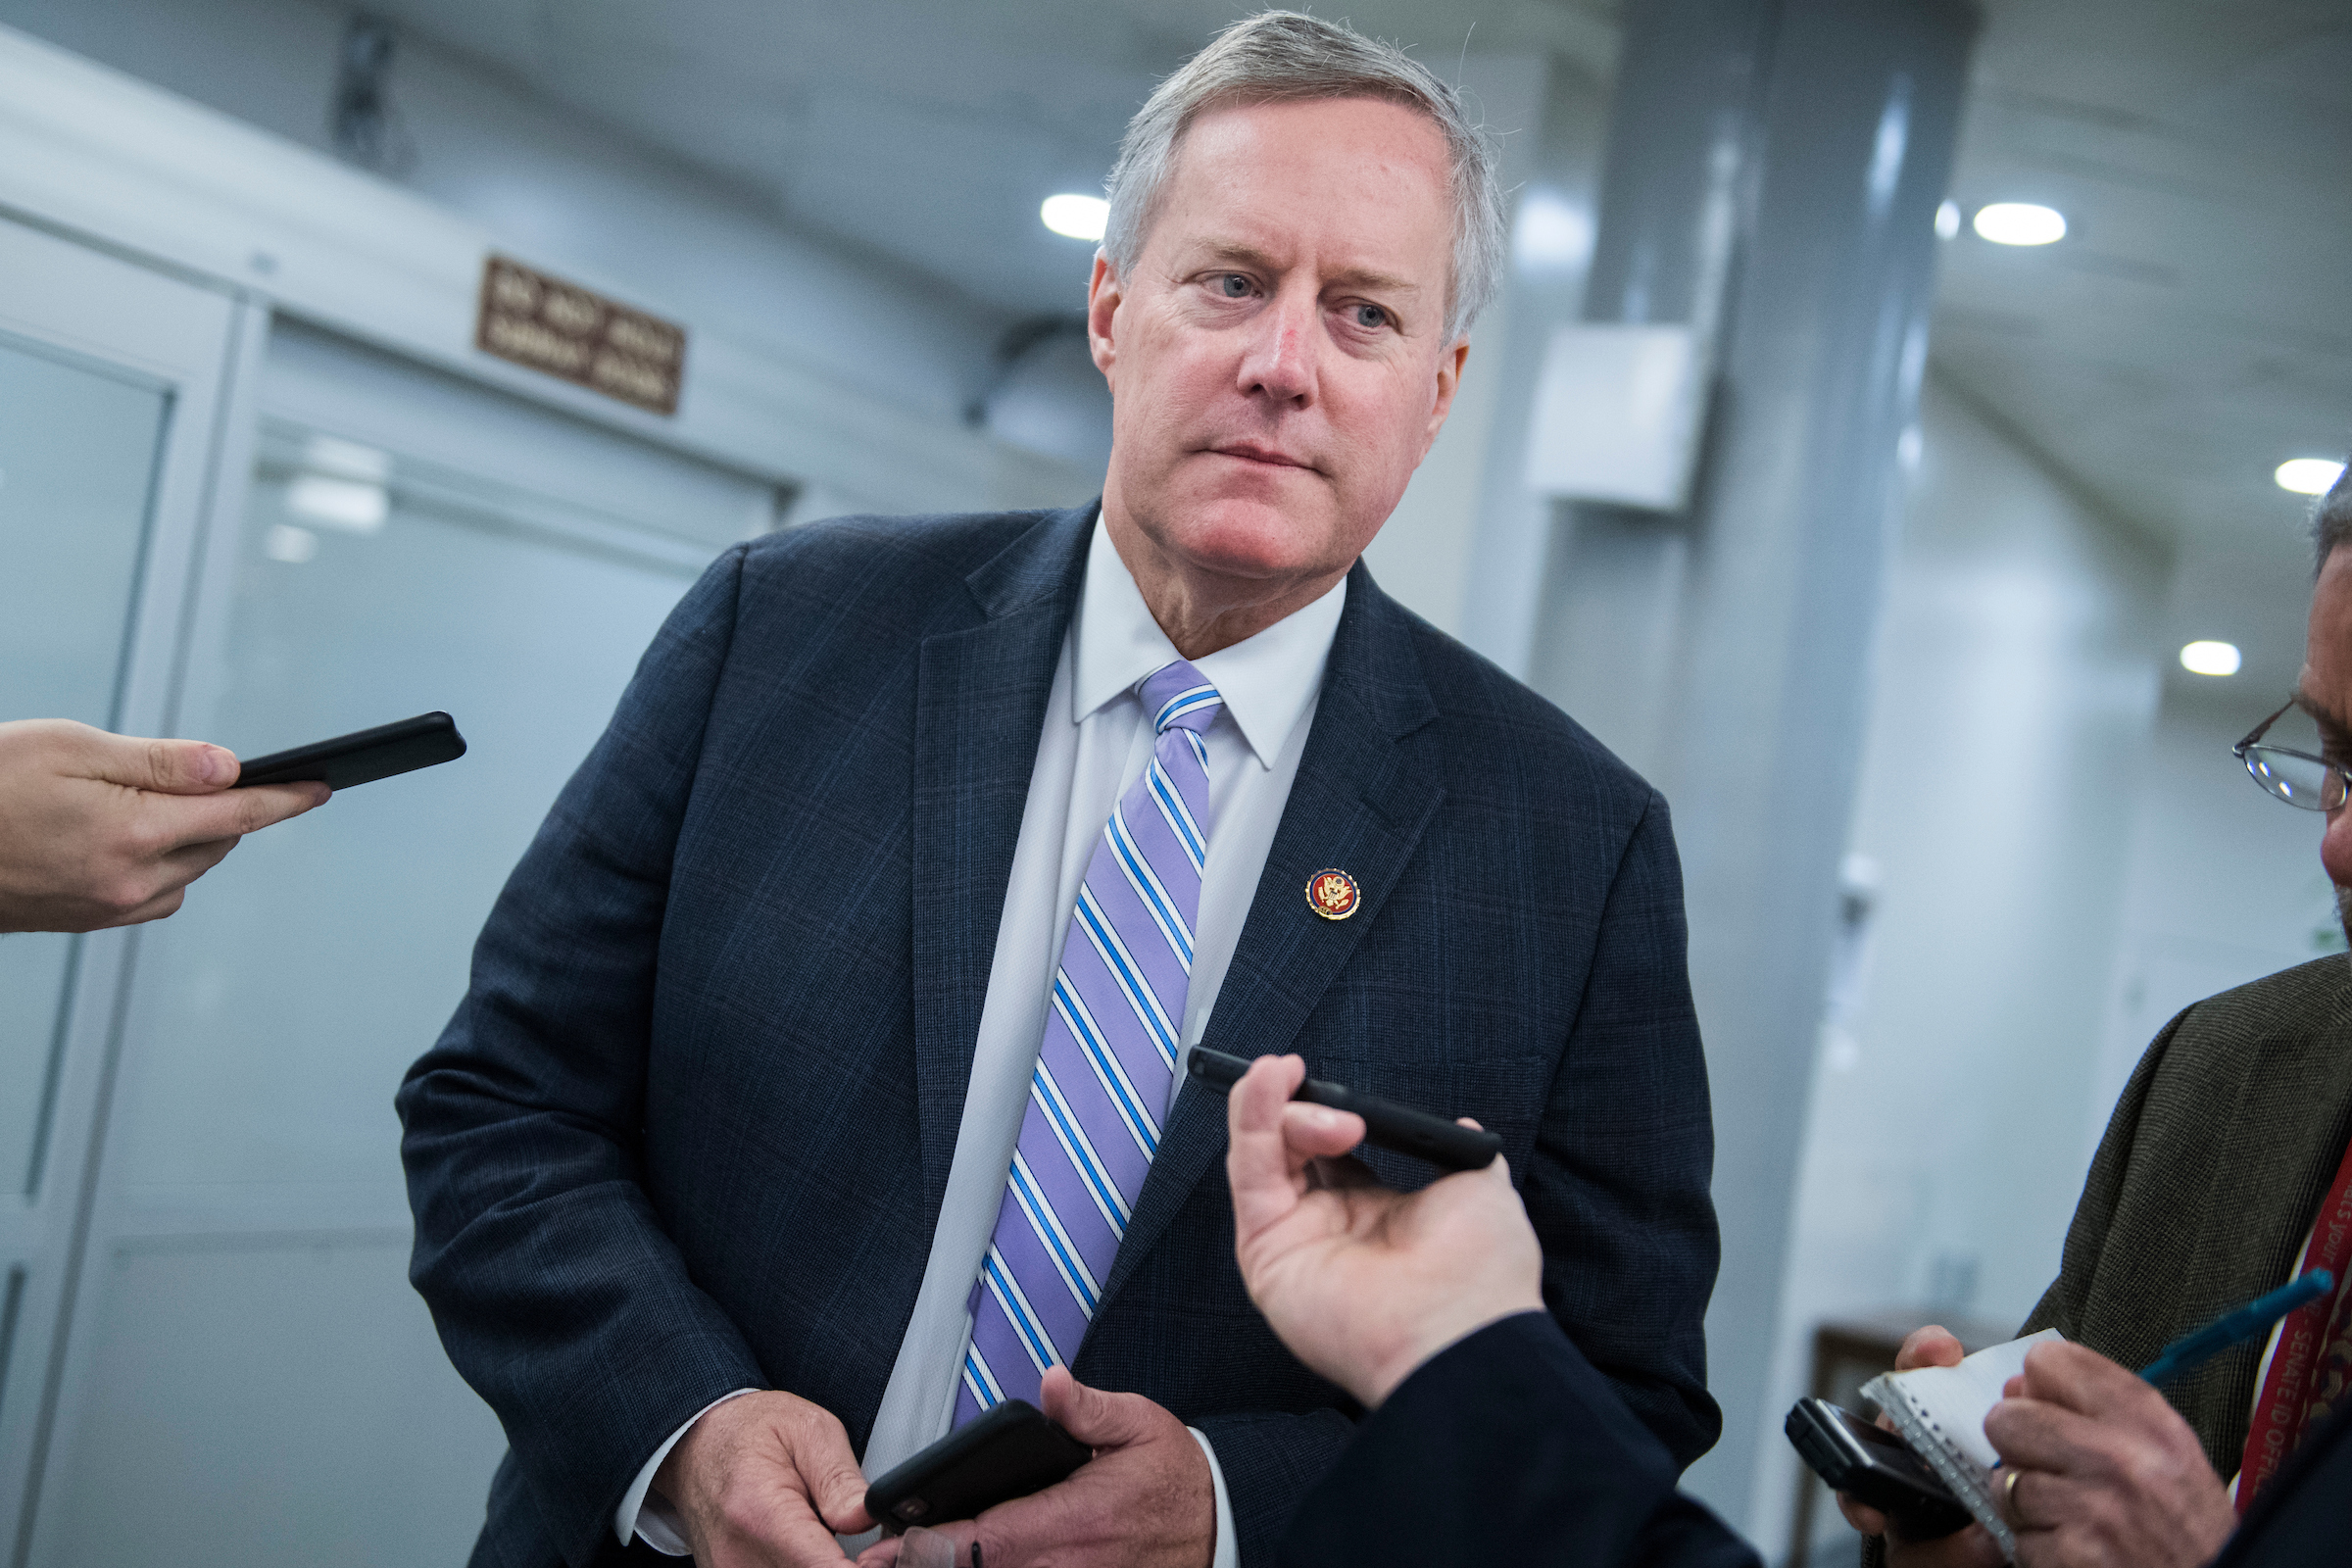 UNITED STATES - JANUARY 28: Rep. Mark Meadows, R-N.C., talks with reporters in the Capitol on Monday, January 28, 2019. (Photo By Tom Williams/CQ Roll Call)